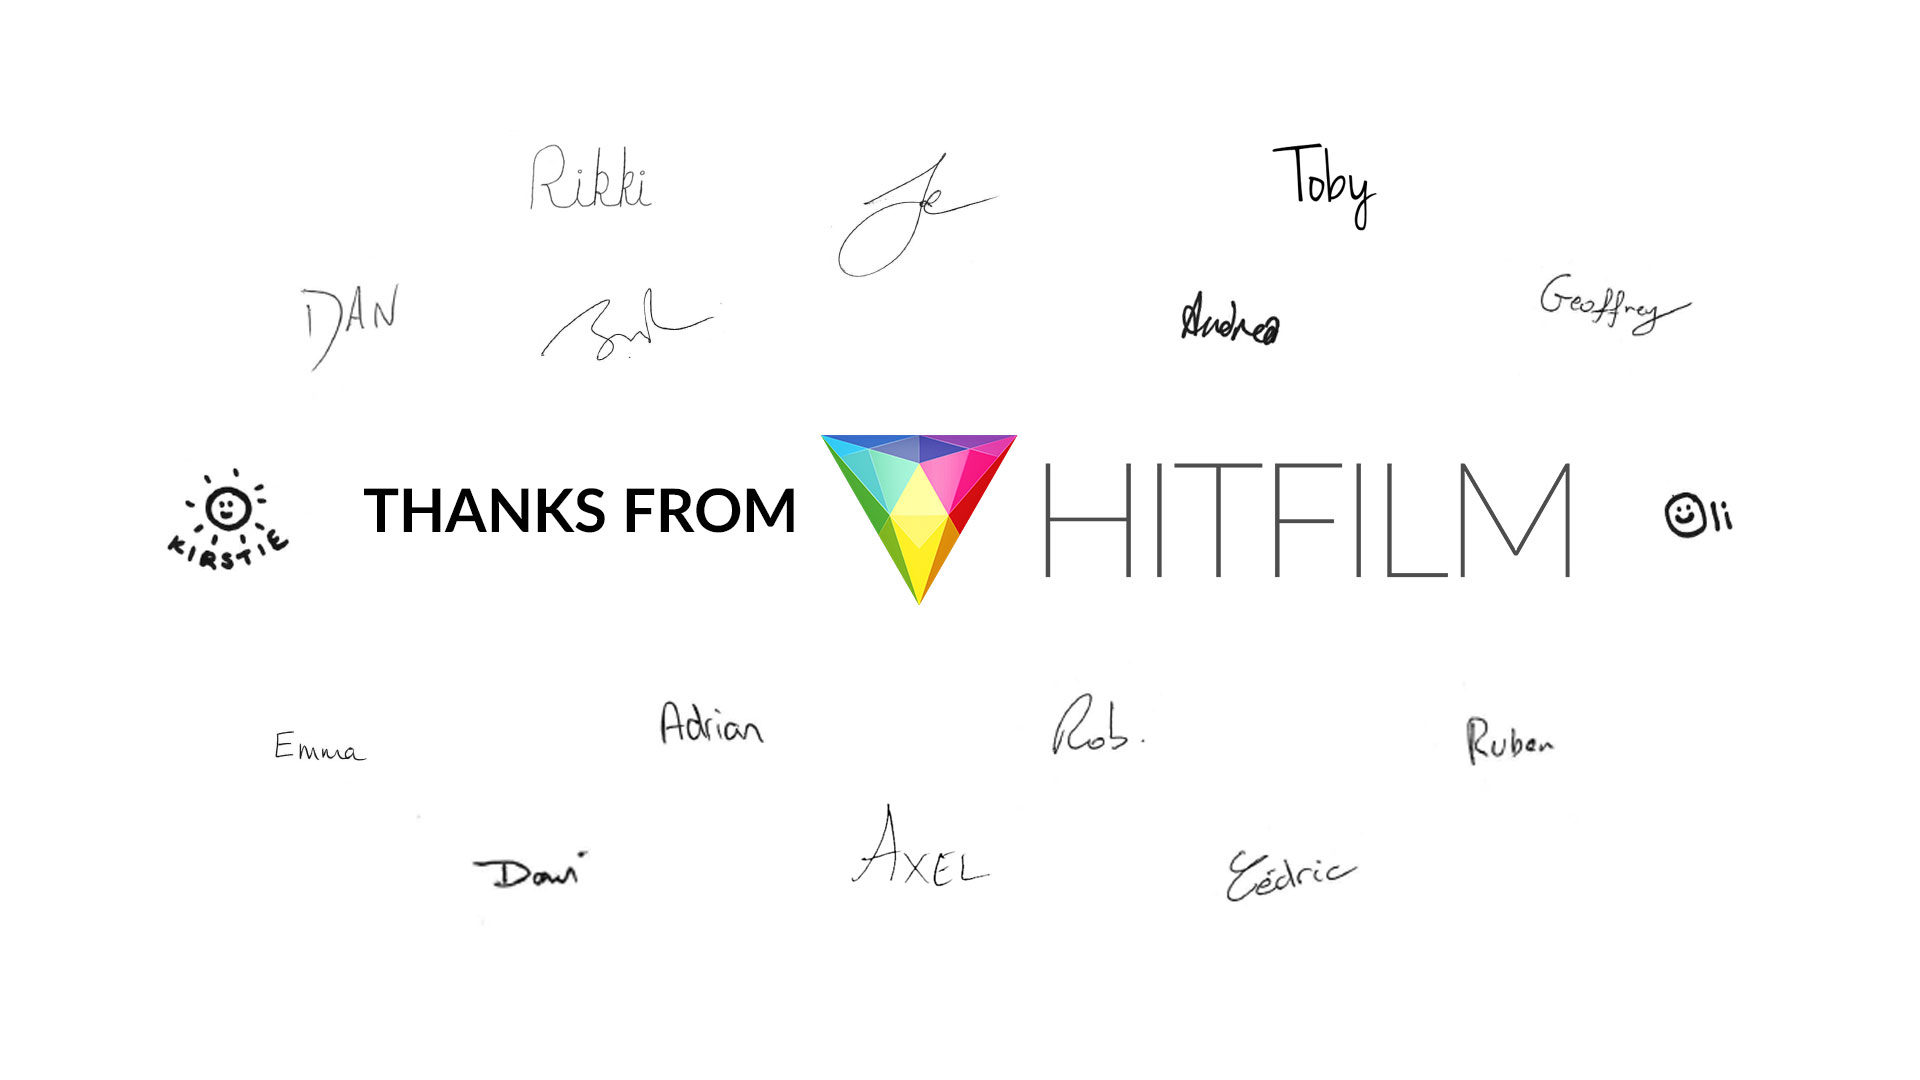 Thanks from the HitFilm team